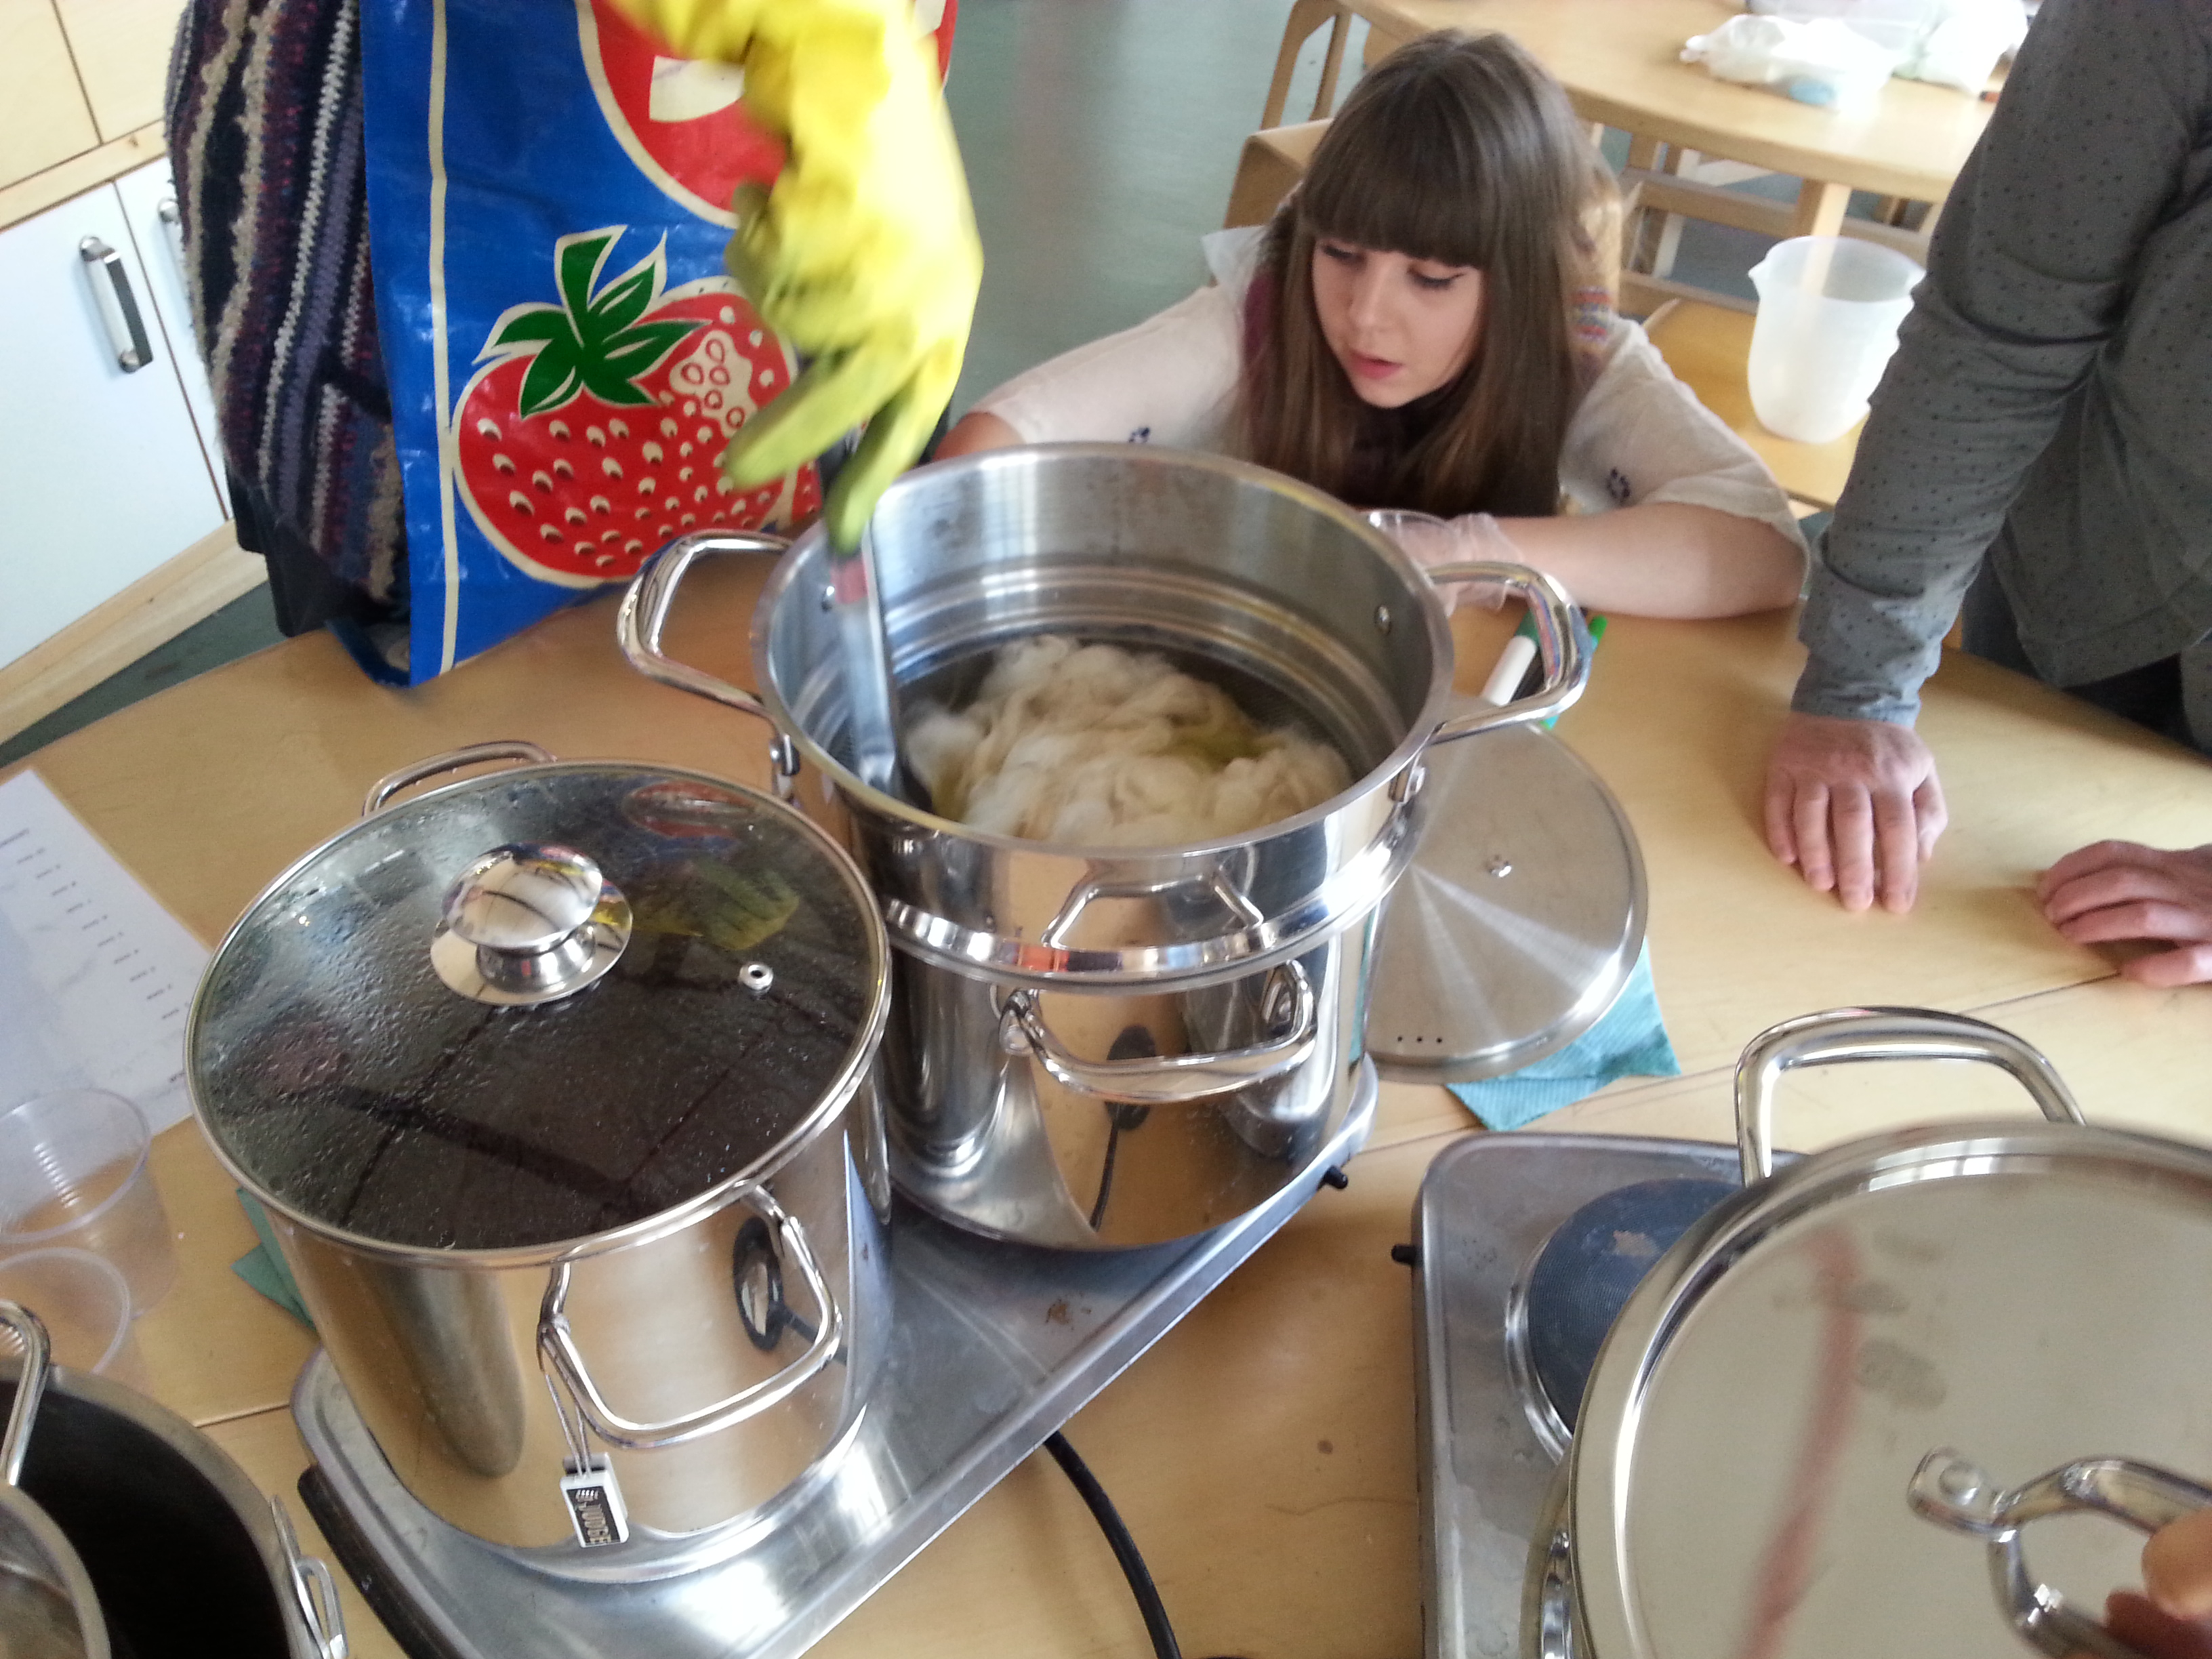 Armley Mills - Wm. Gott dye recipe book - dyeing session with Debbie Tomkies of Making Futures